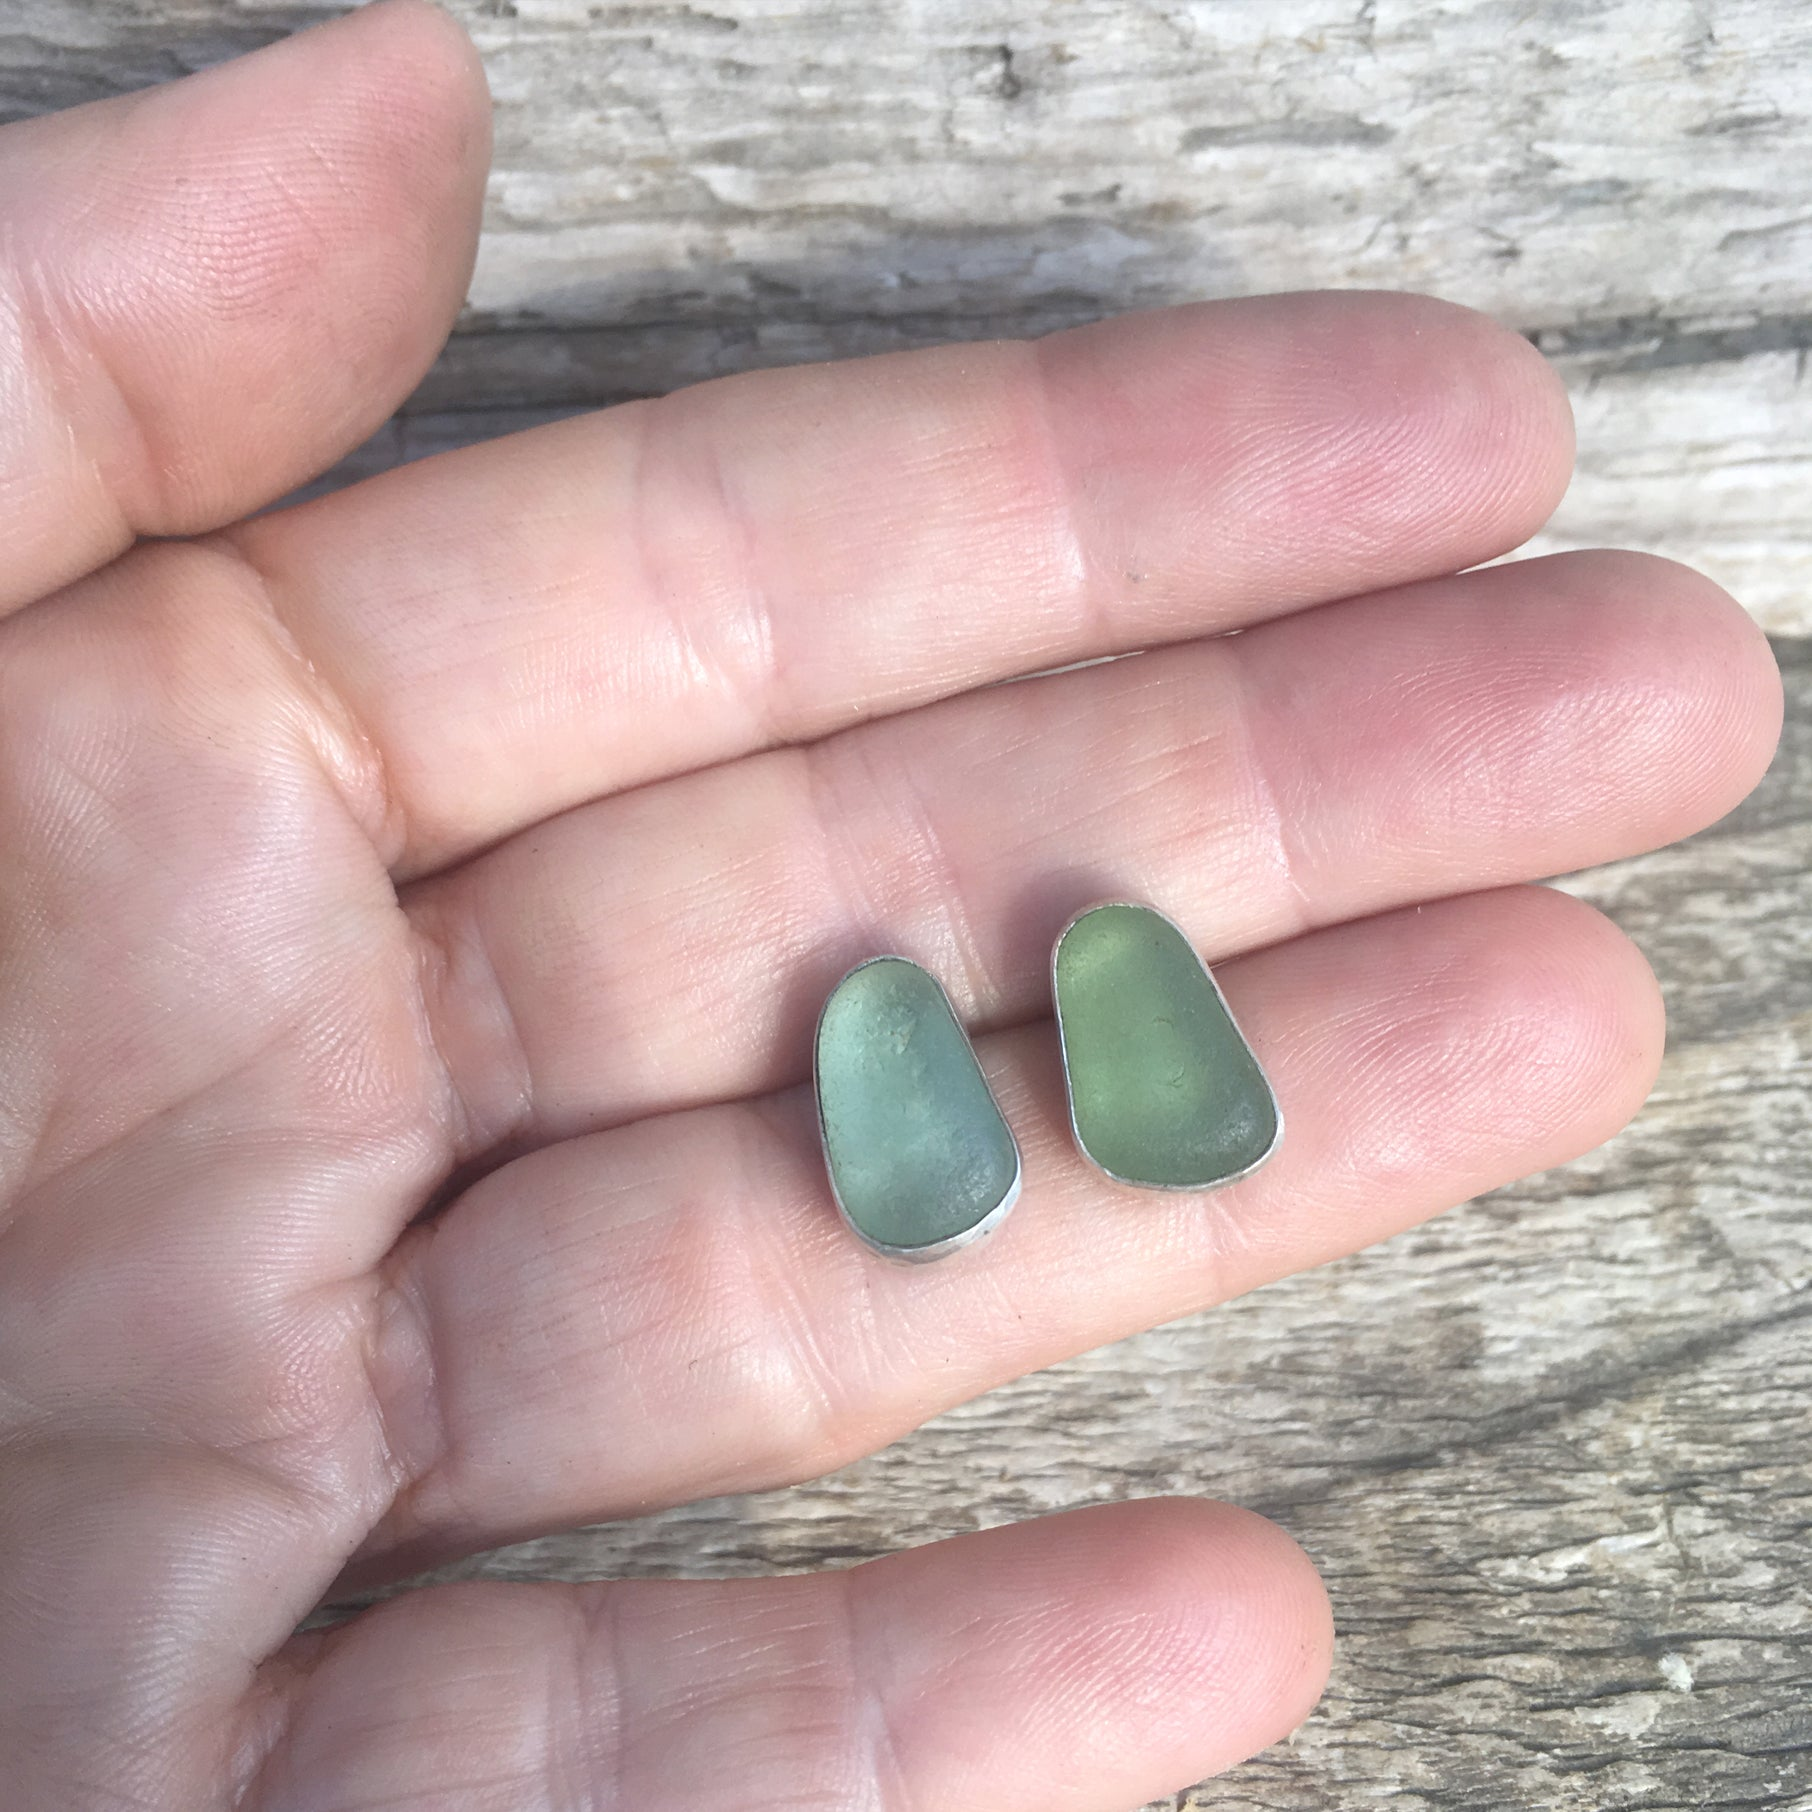 Seafoam Sea Glass Studs Shown in Hand